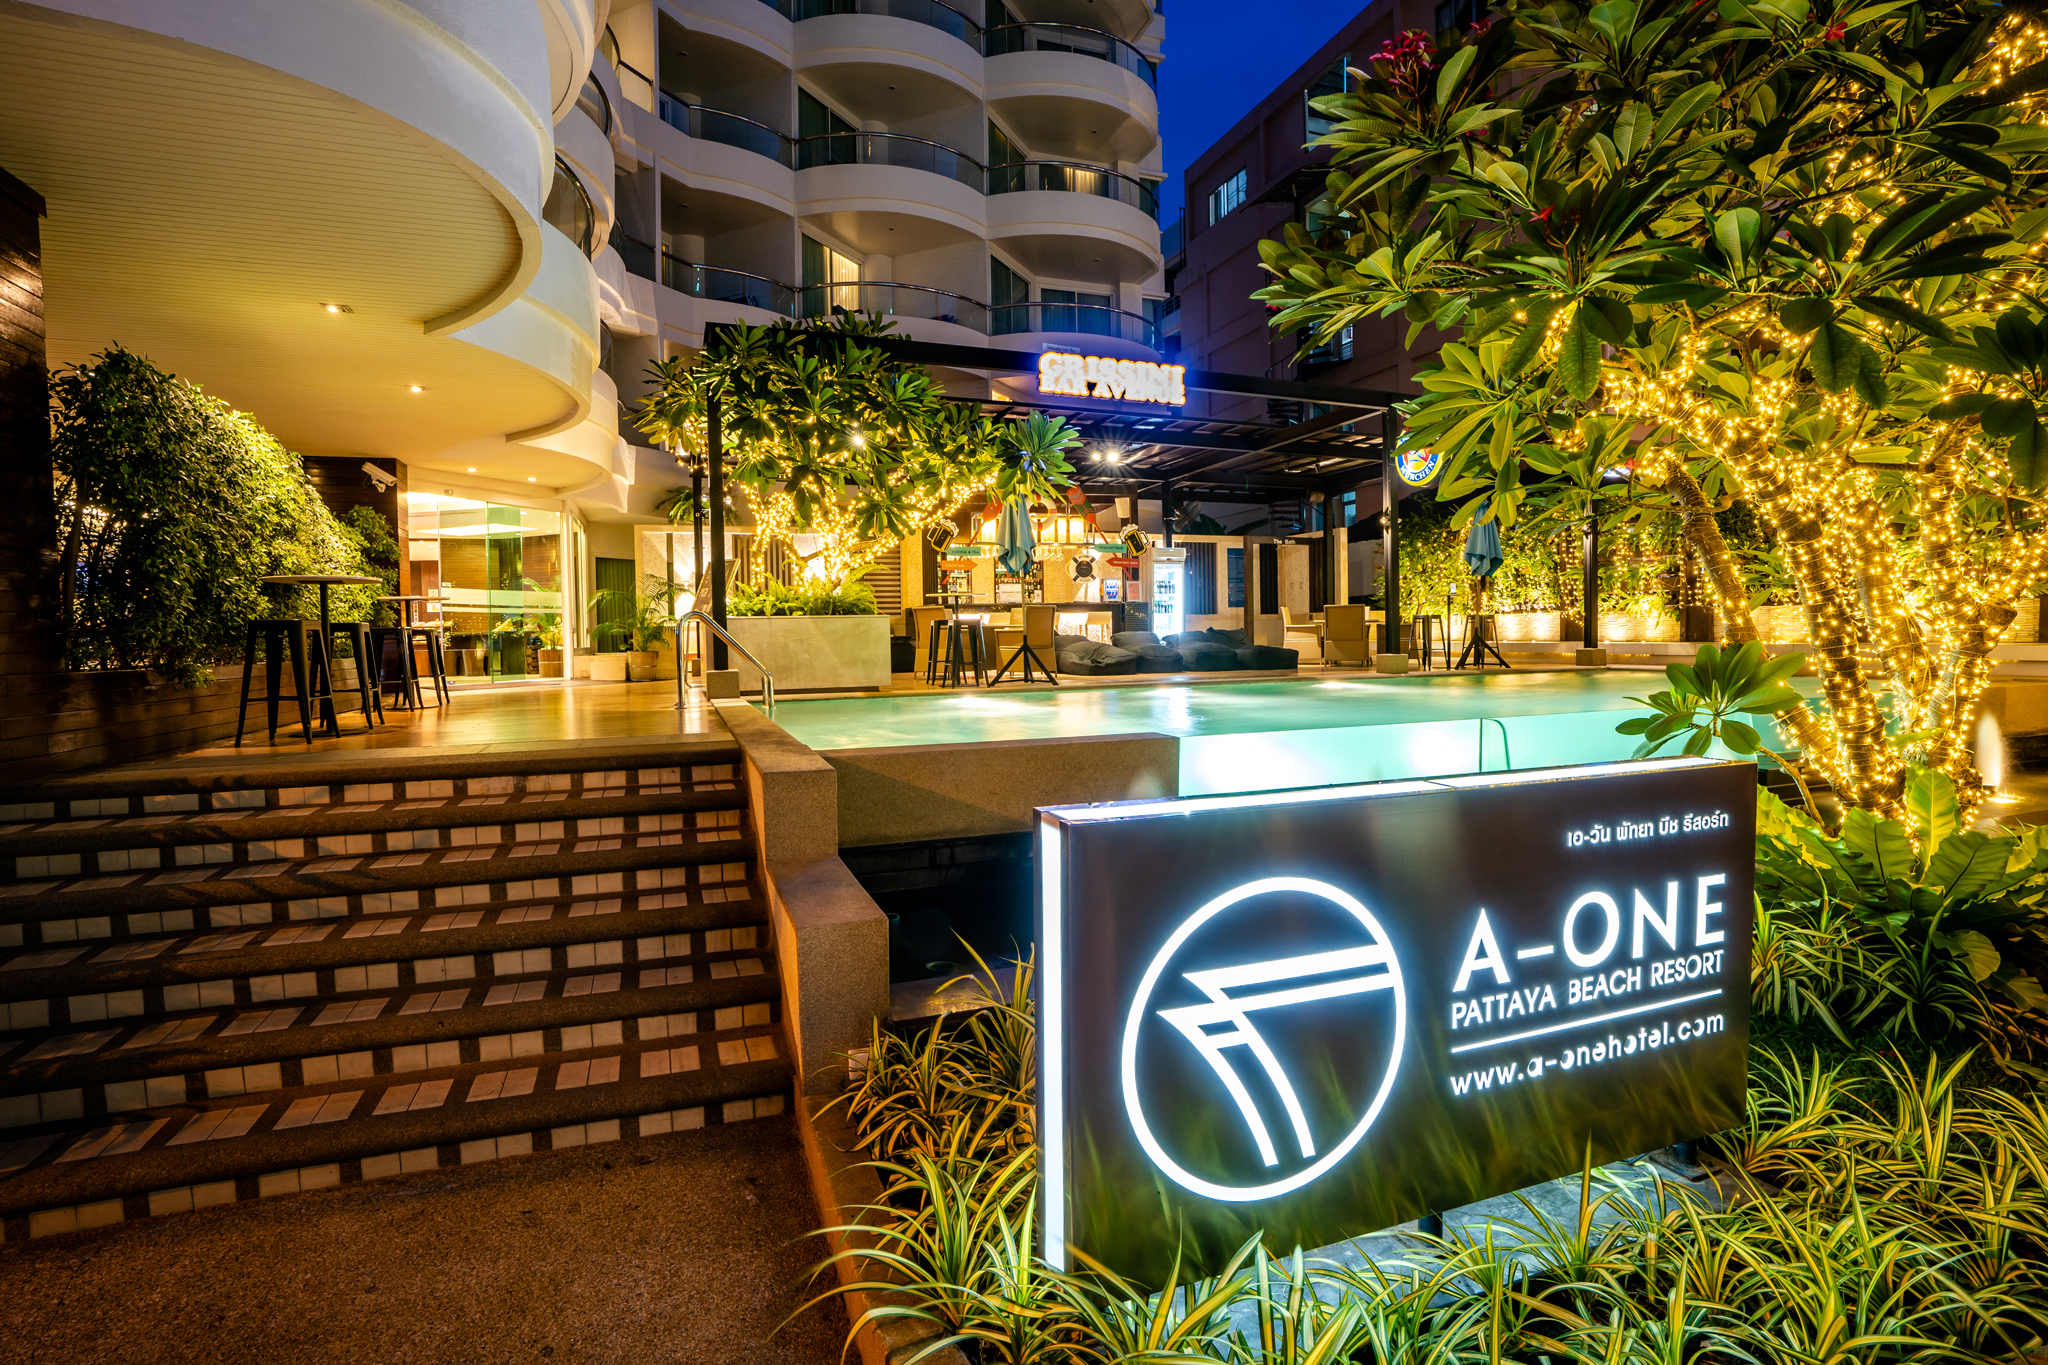 A-One Pattaya Beach Resort, Pattaya